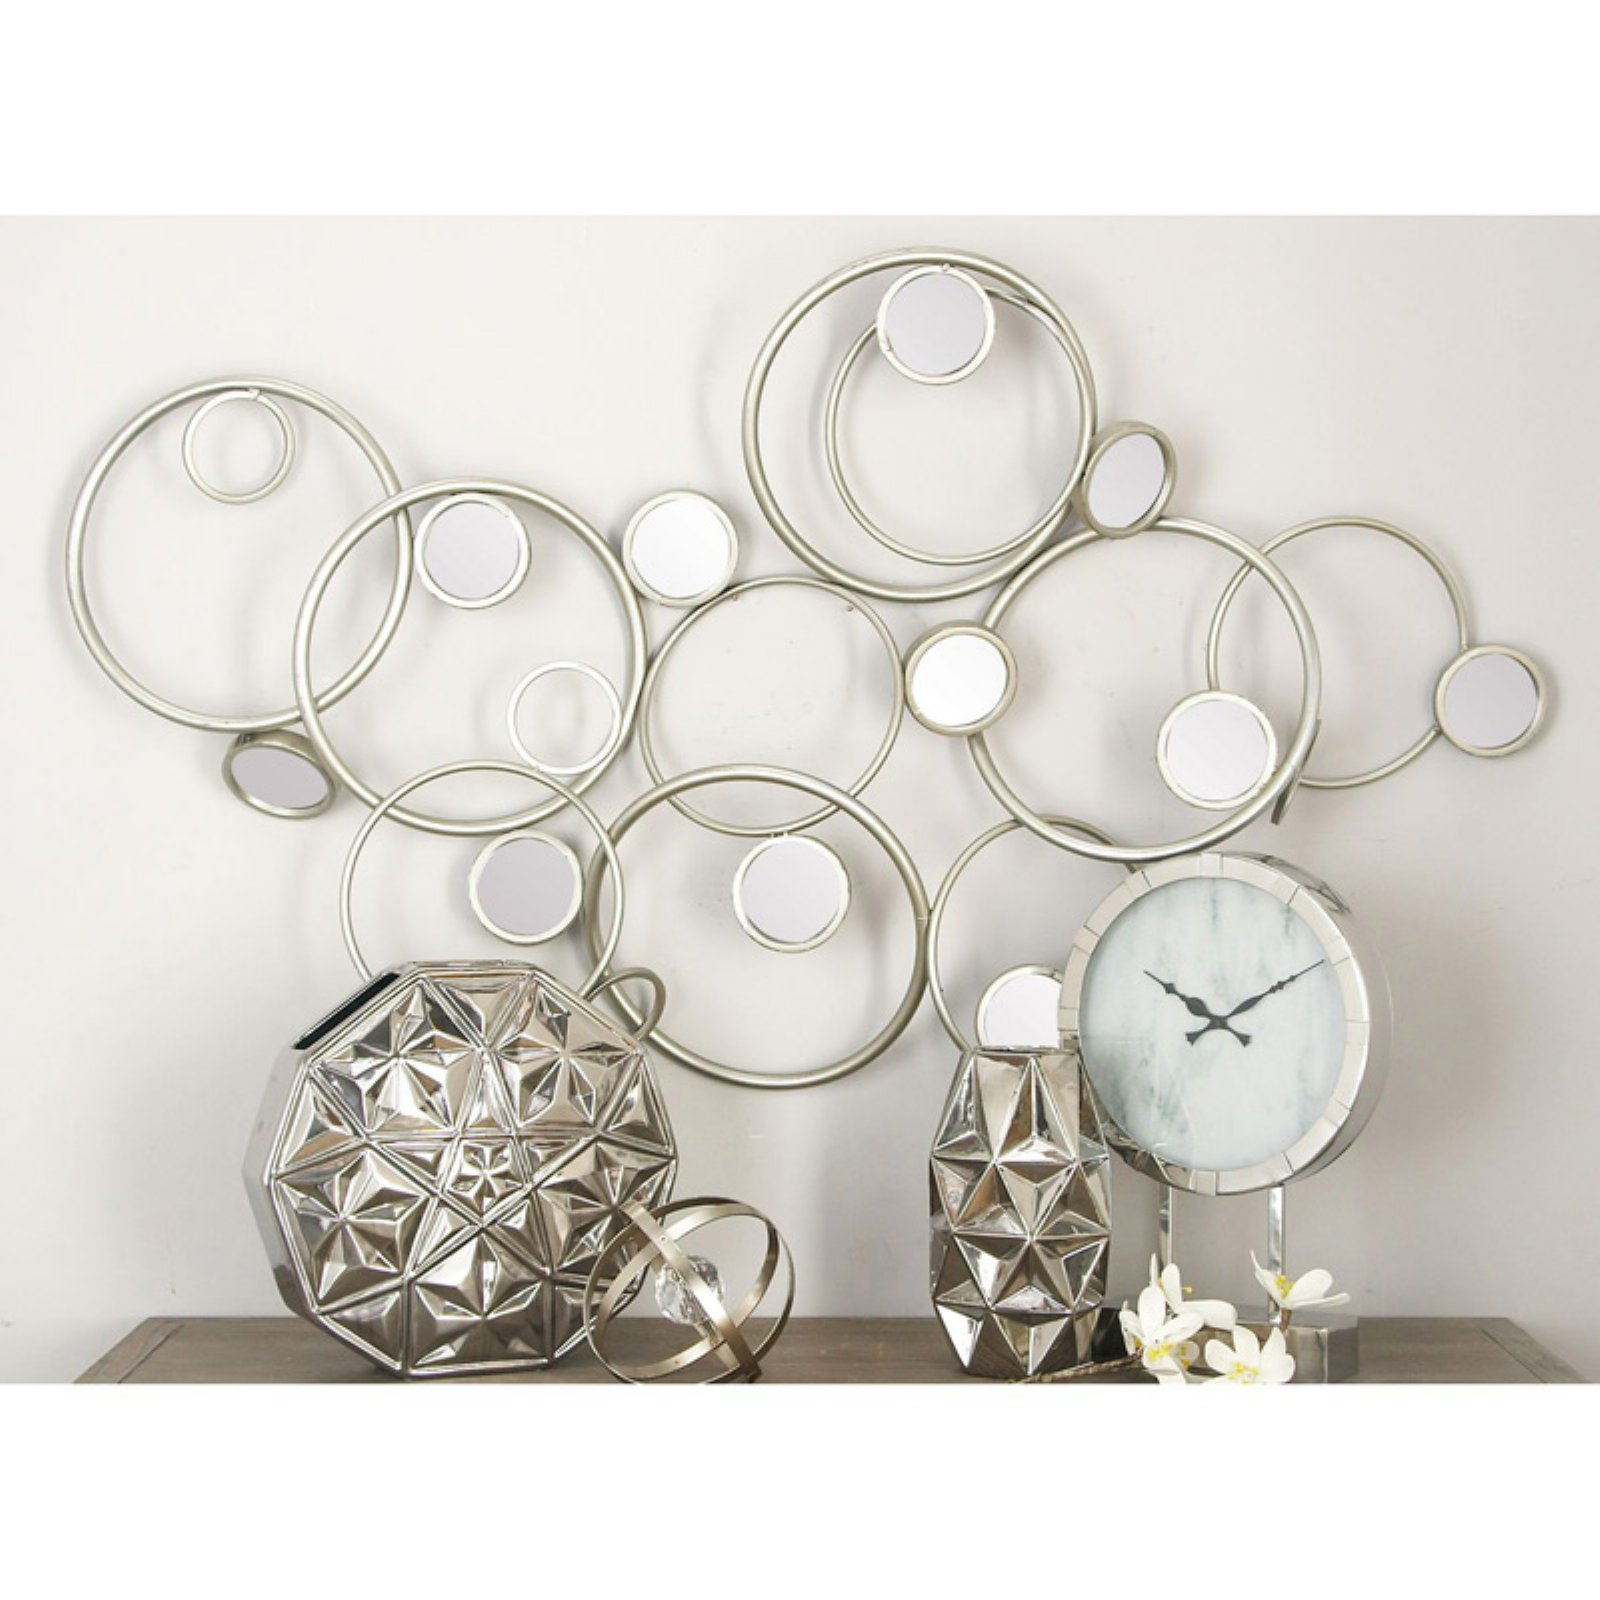 """Modern Reflections Metal Mirror Wall Decor 64""""w, 30""""h 50287 Throughout Contemporary Abstract Round Wall Decor (View 20 of 30)"""